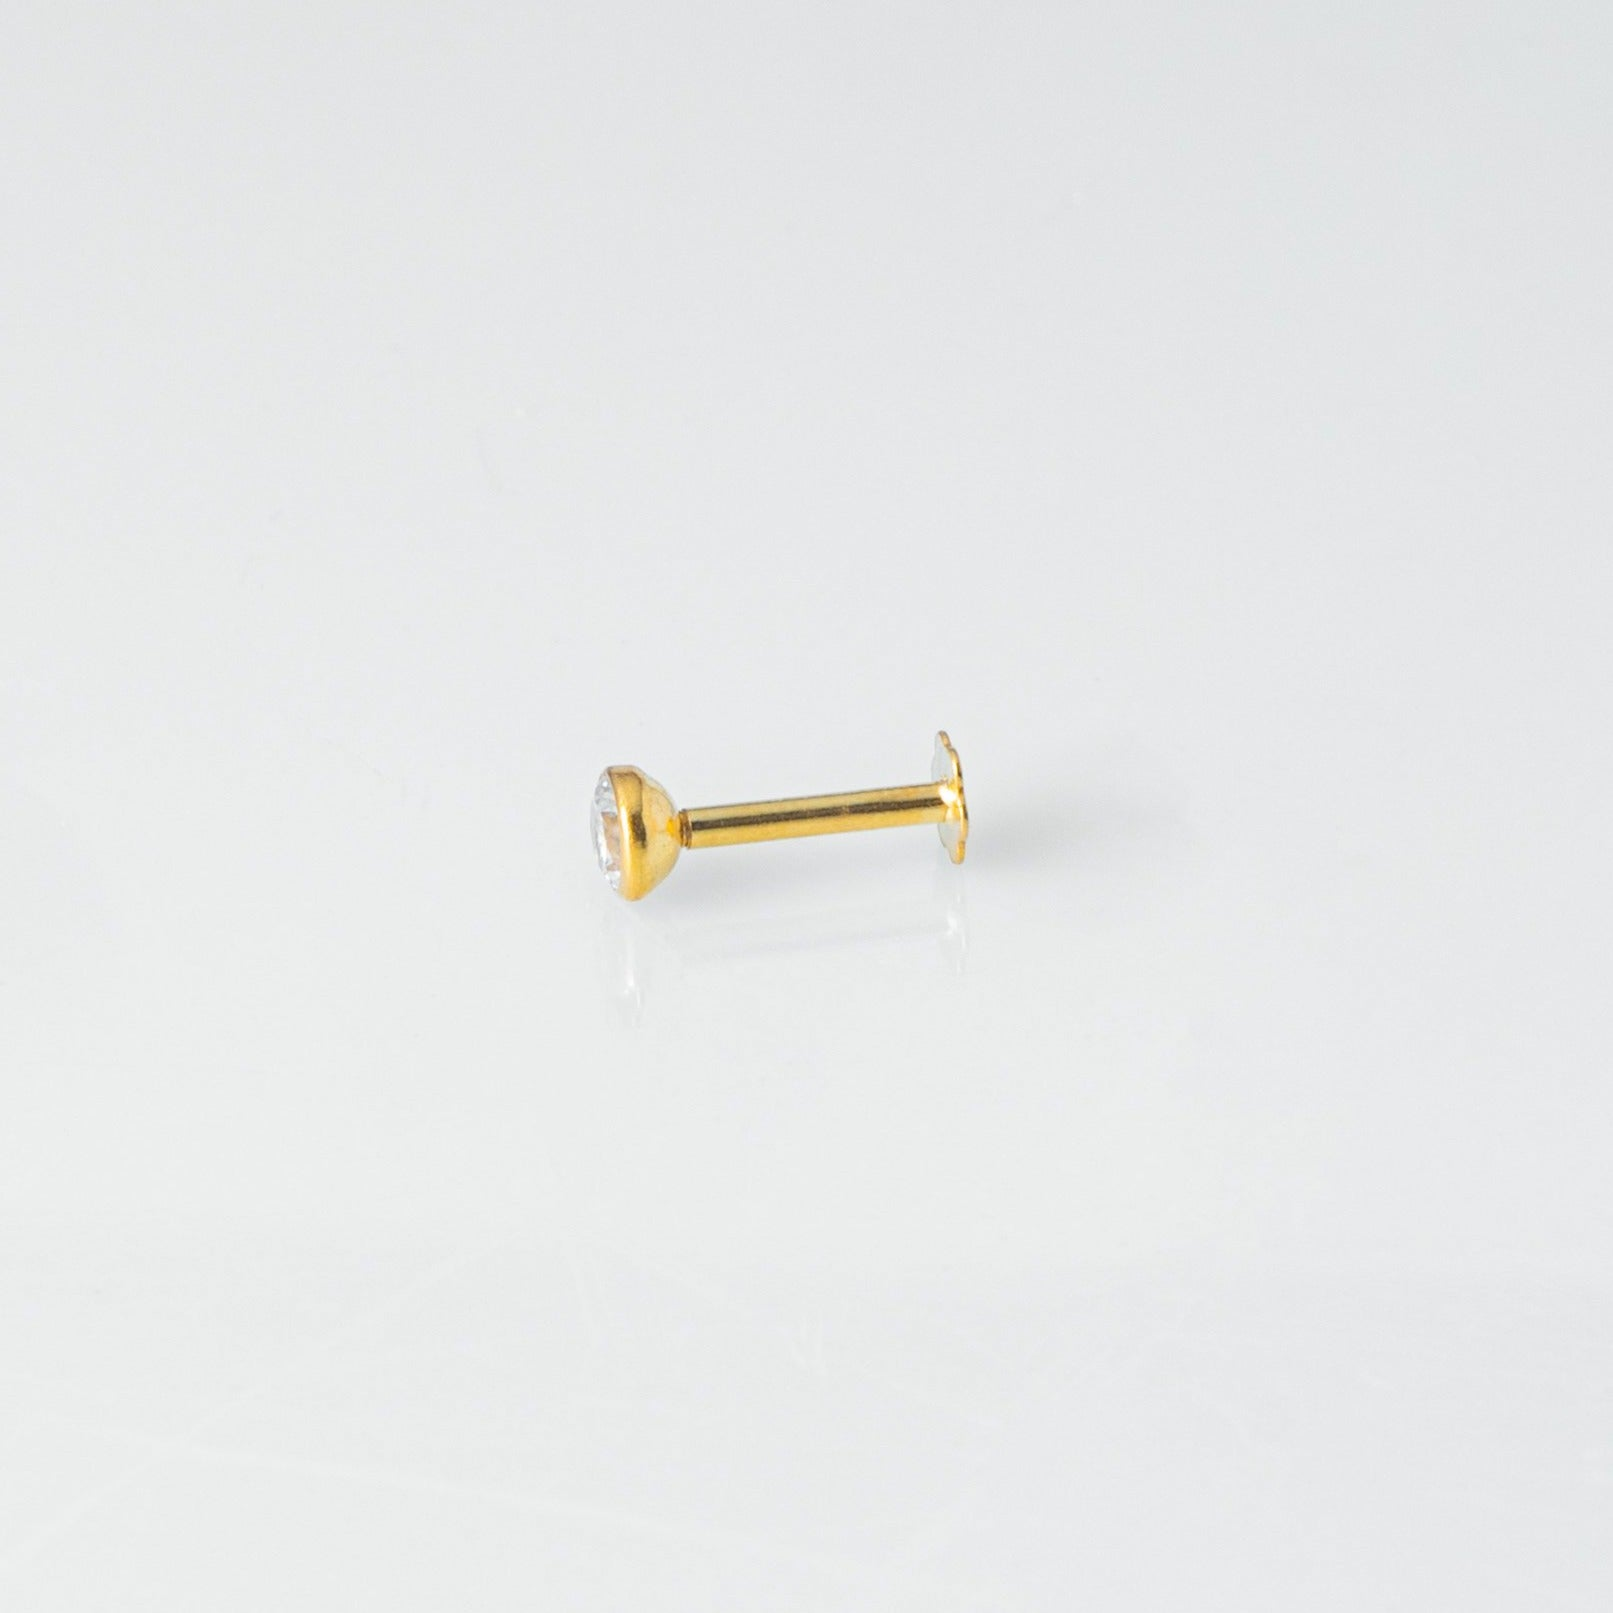 18ct Yellow Gold Screw Back Nose Stud set with Cubic Zirconia in a Rub Over (Bezel) Setting (3mm - 3.25mm)